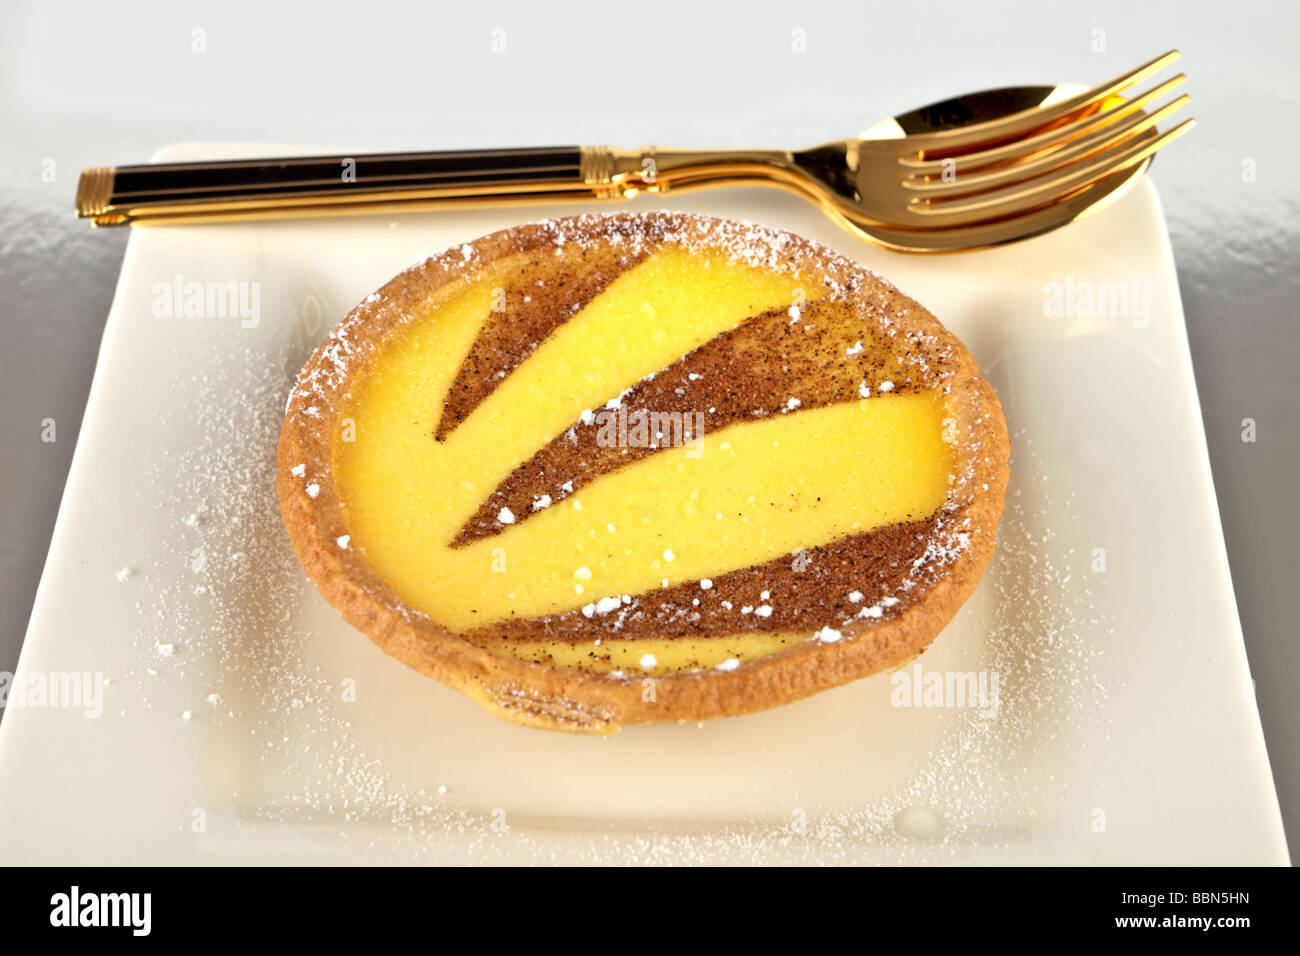 Custard tart small on a white plate dusted with caster sugar - Stock Image